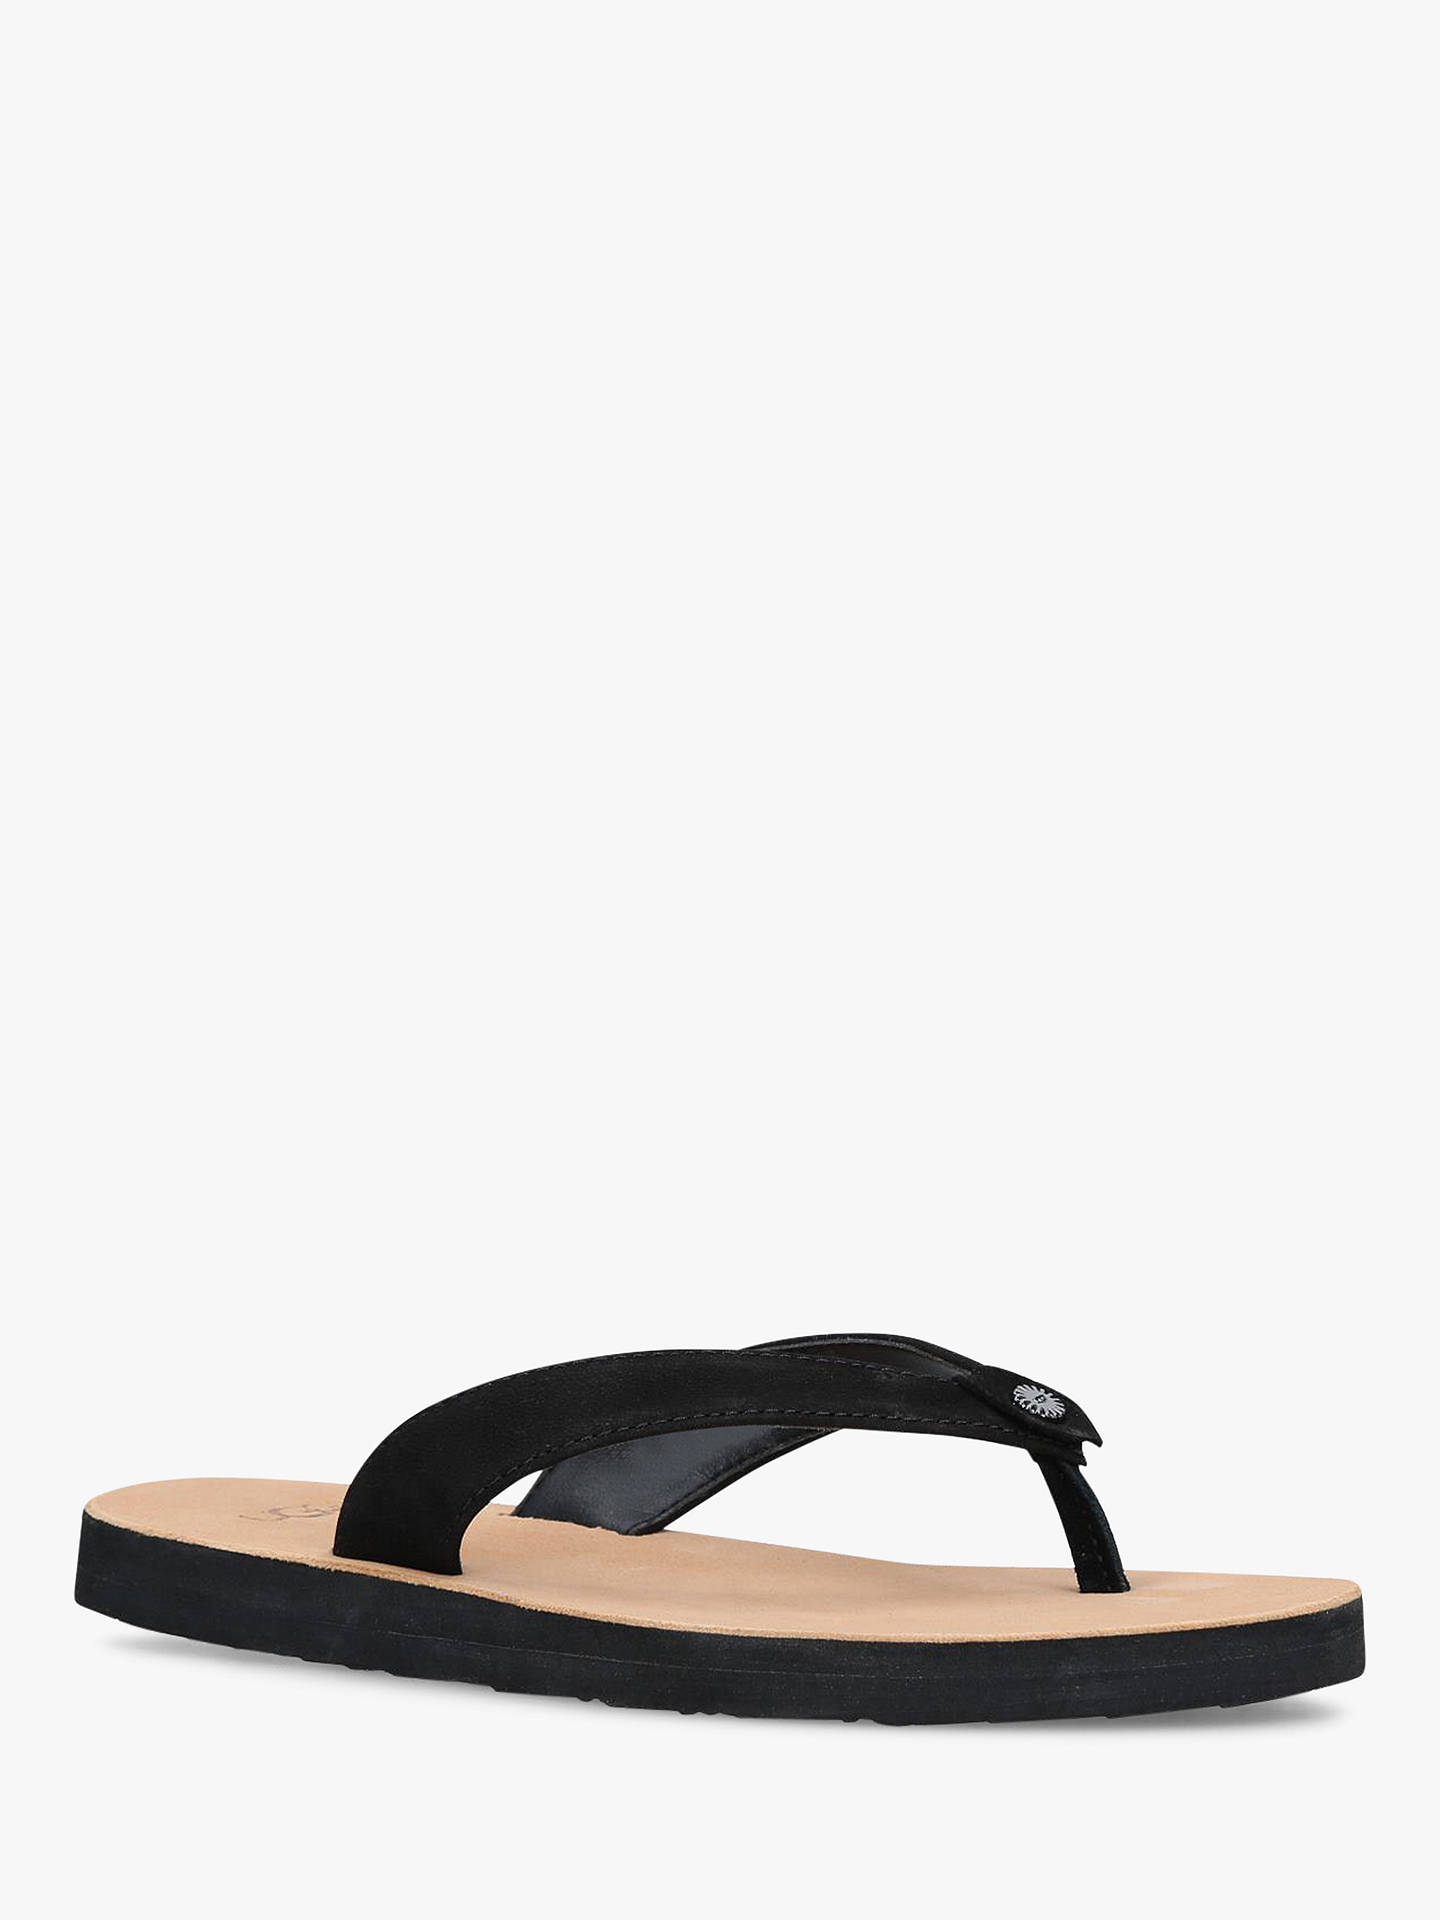 UGG Tawney Flip Flops | Black at John Lewis & Partners